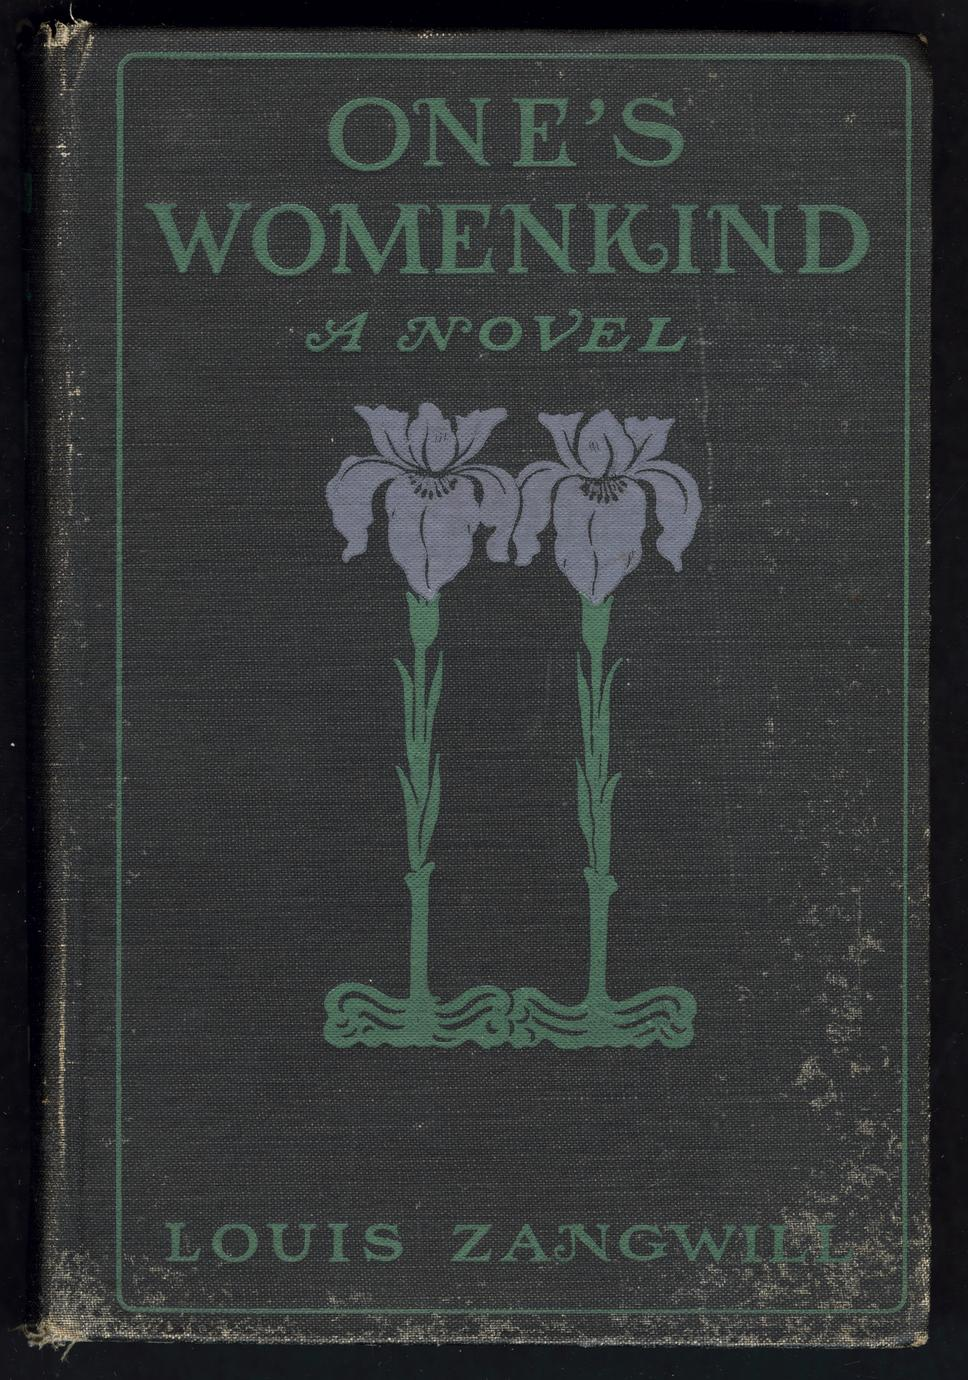 One's womenkind (1 of 2)